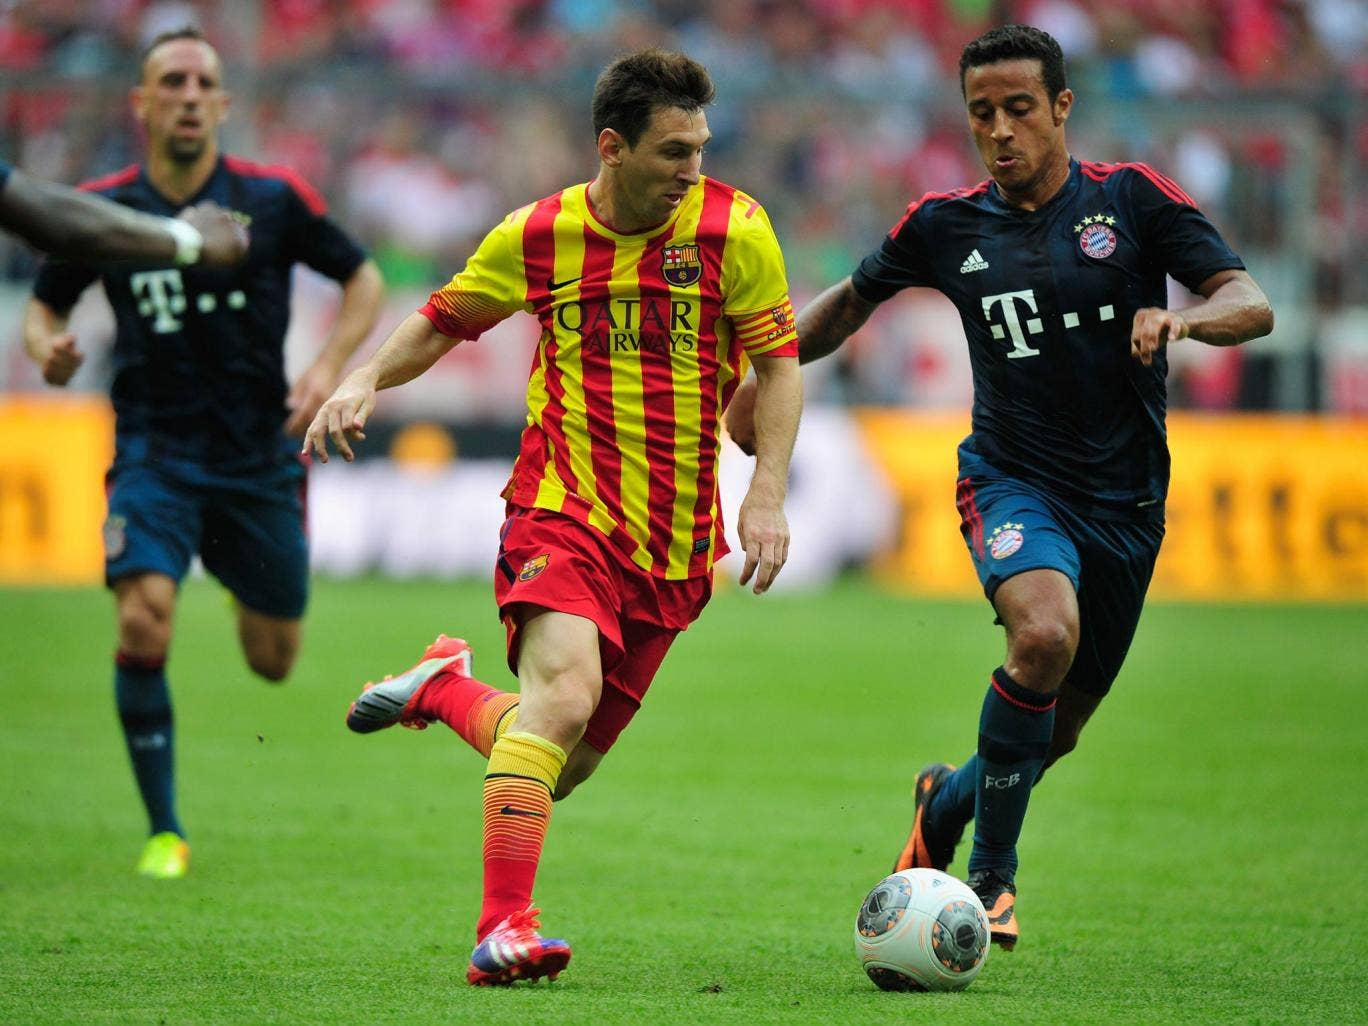 Lionel Messi in action against Bayern Munich's Thiago Alcantara